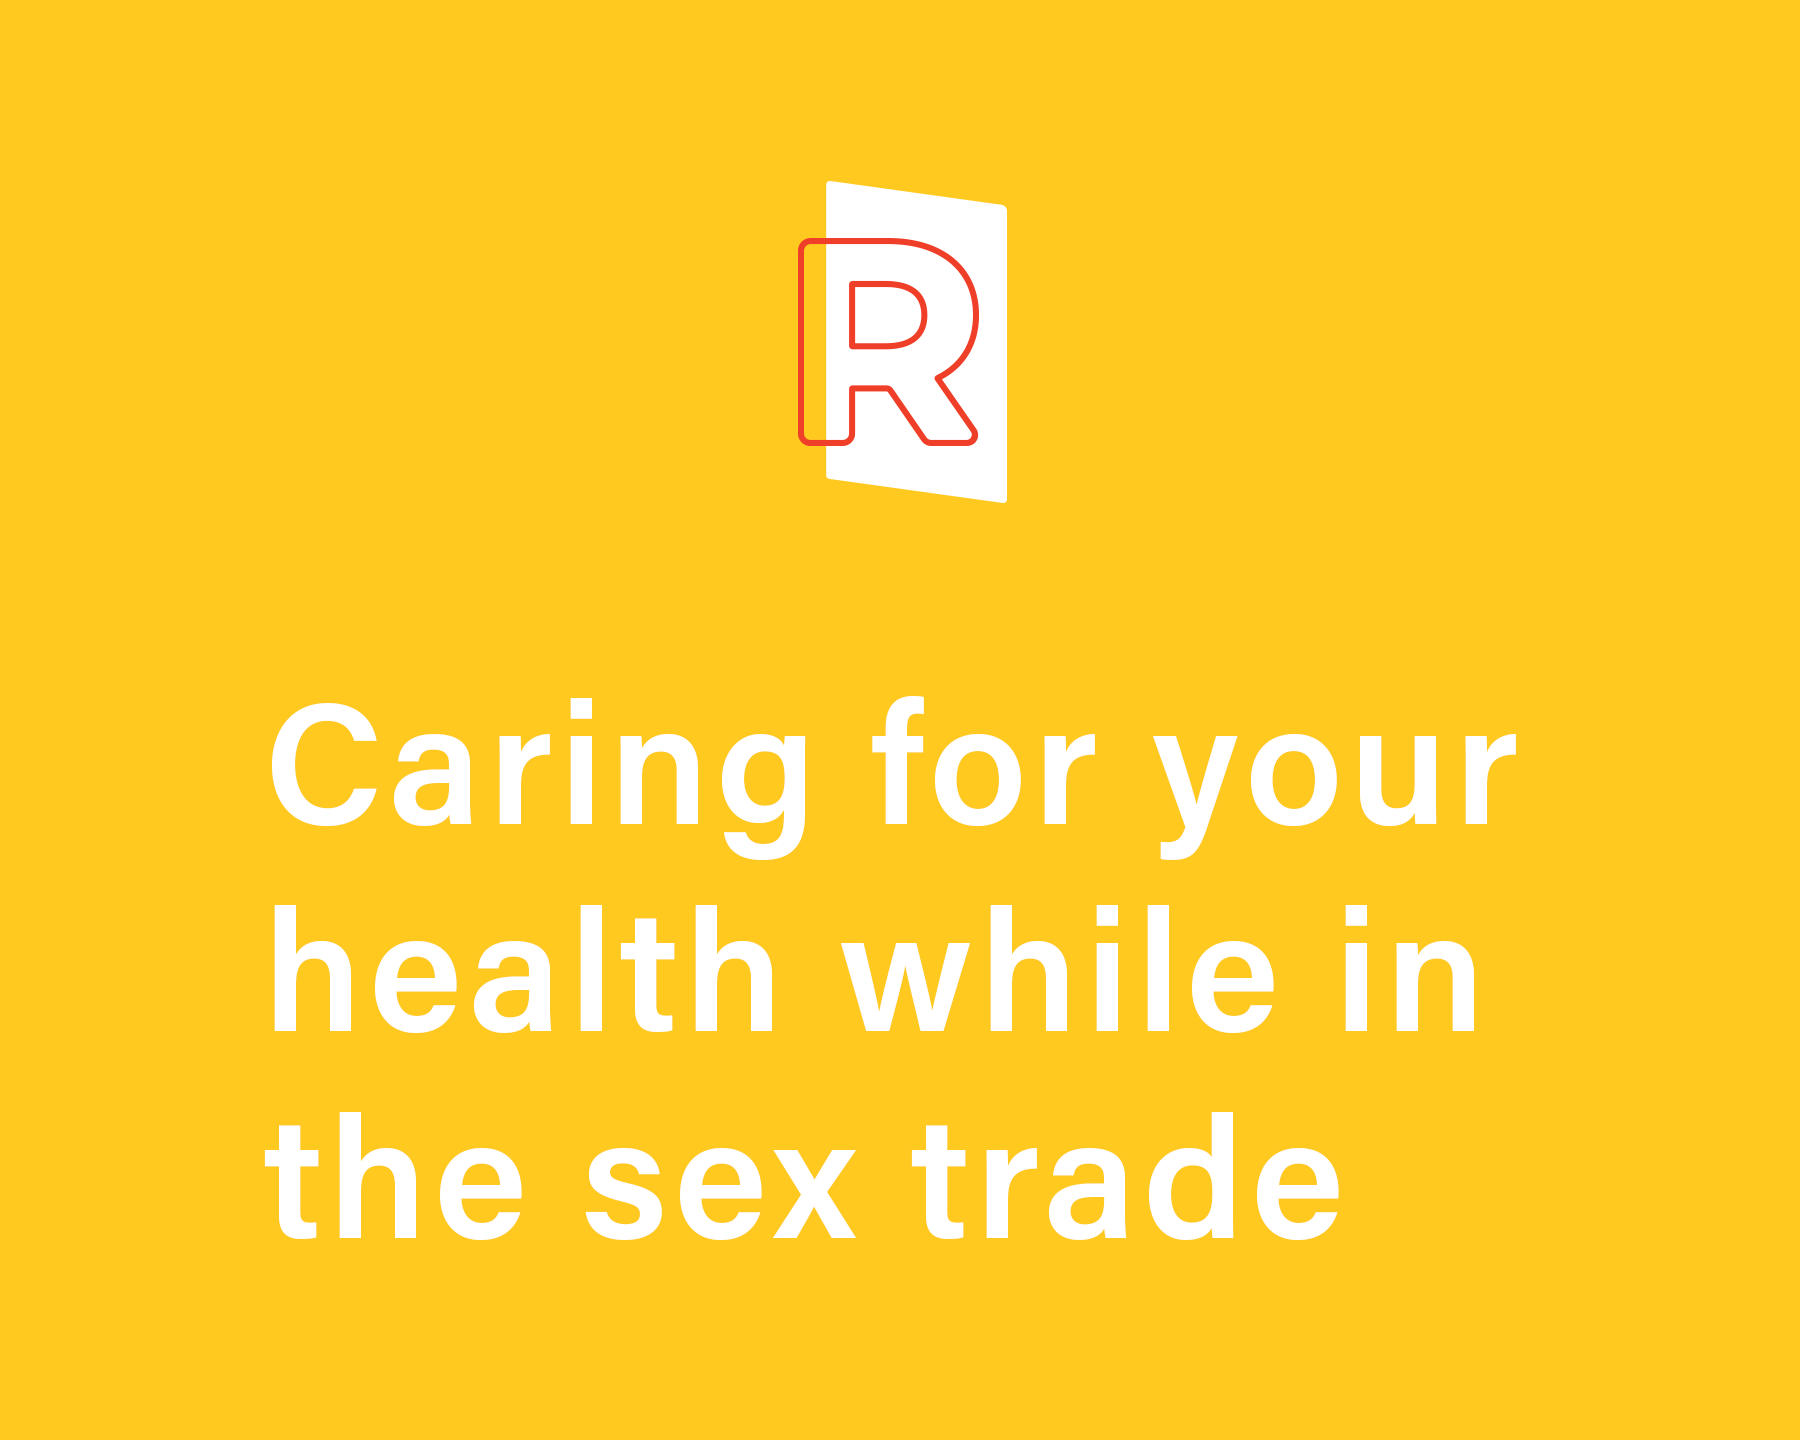 REST_caring-for-your-health.png